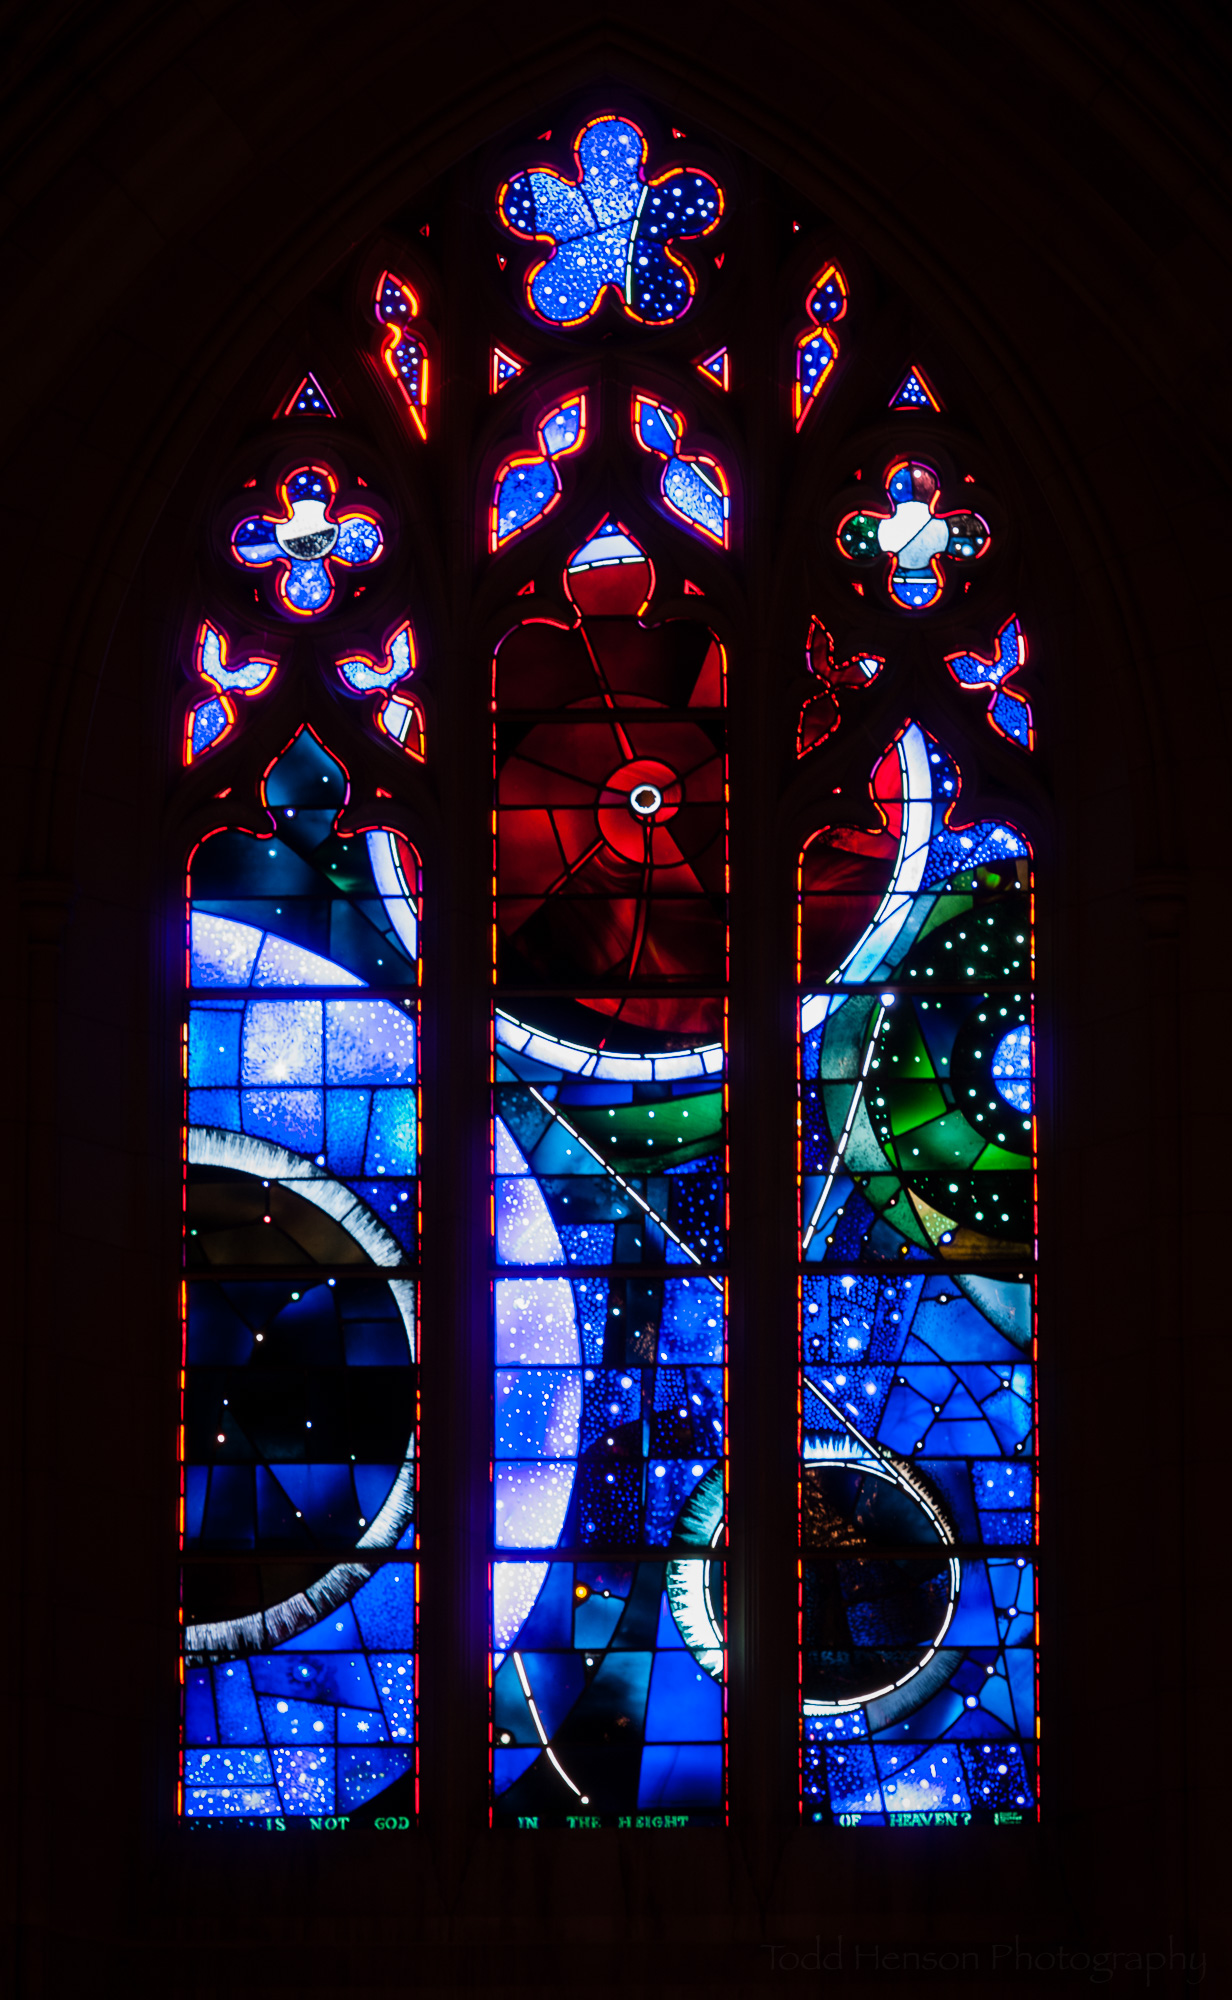 Space Window. Stained glass window at Washington National Cathedral.